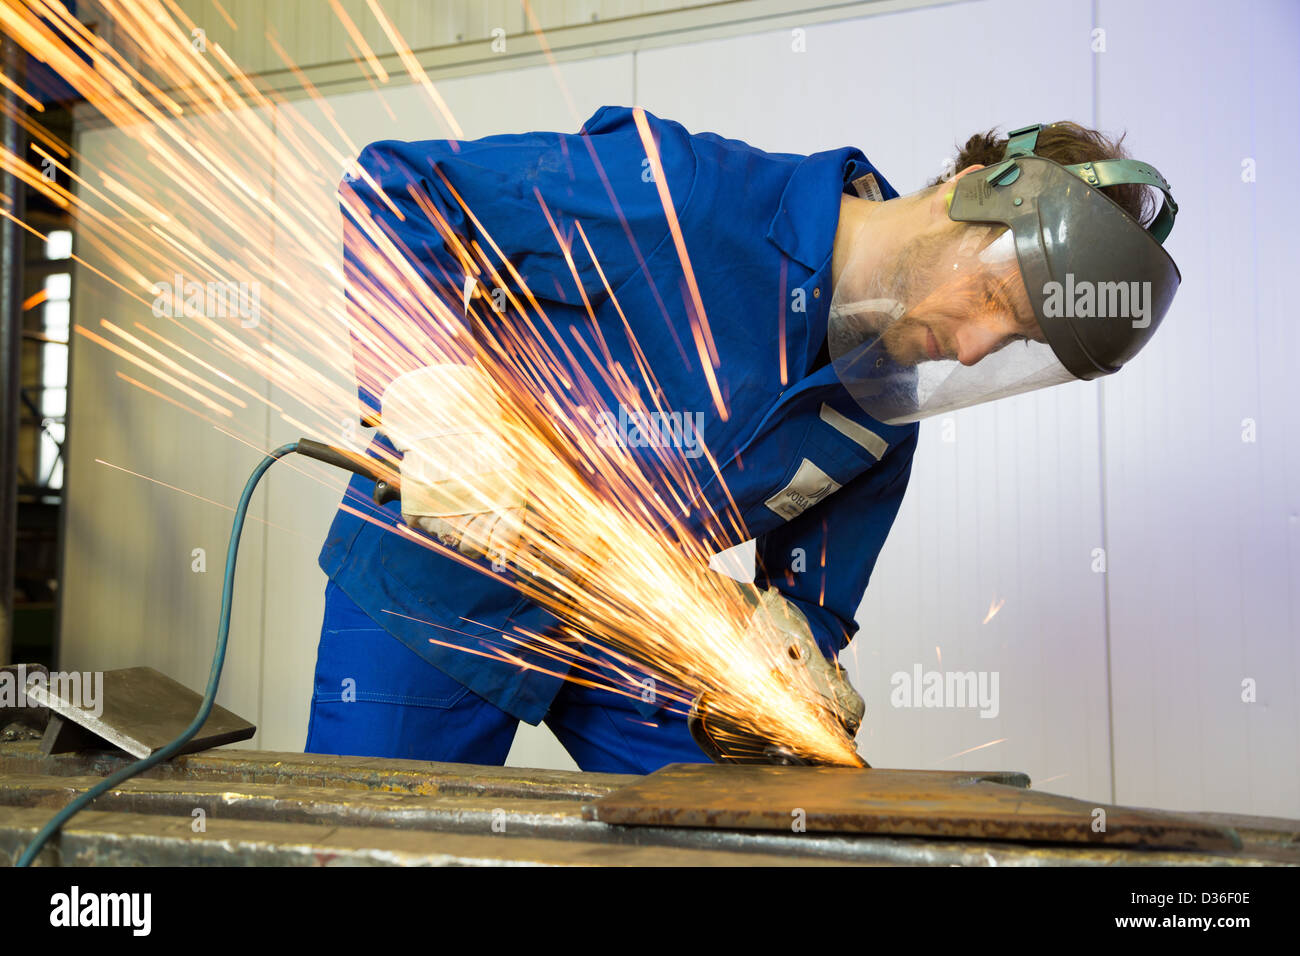 A construction worker using an angle grinder producing a lot of sparks - Stock Image